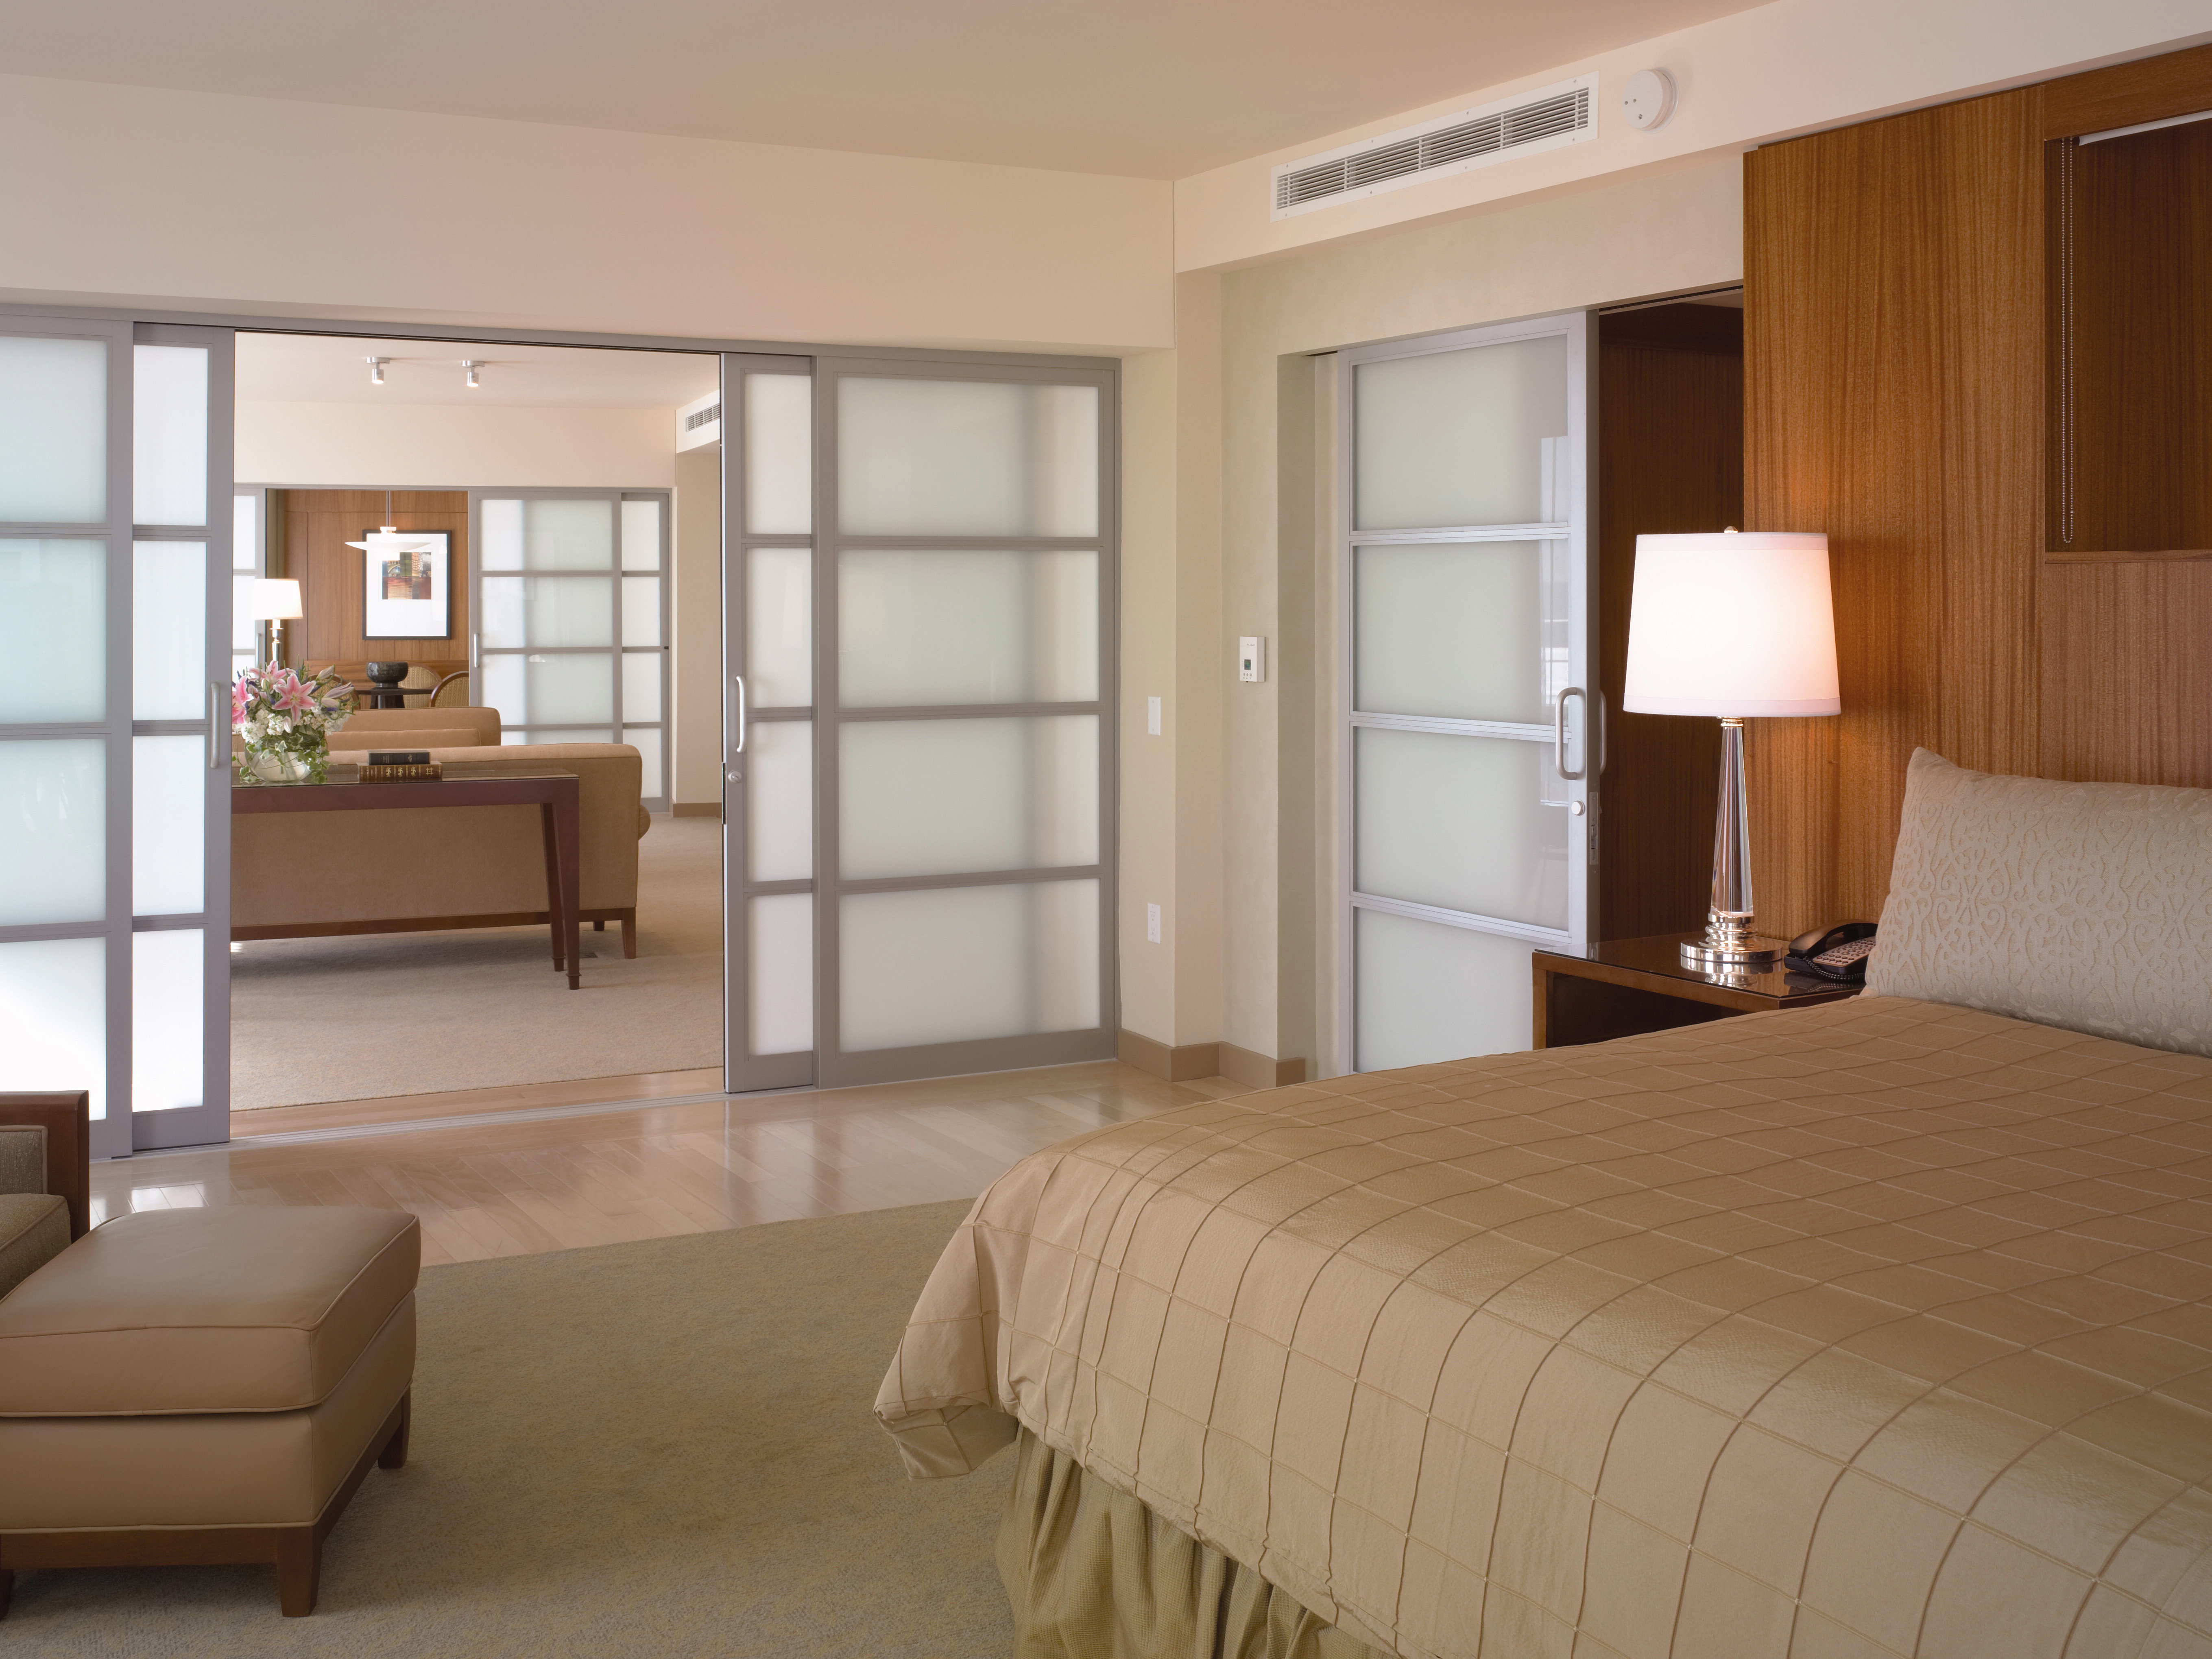 Bedroom Lounge Luxury Modern Suite property home living room condominium cottage lamp containing